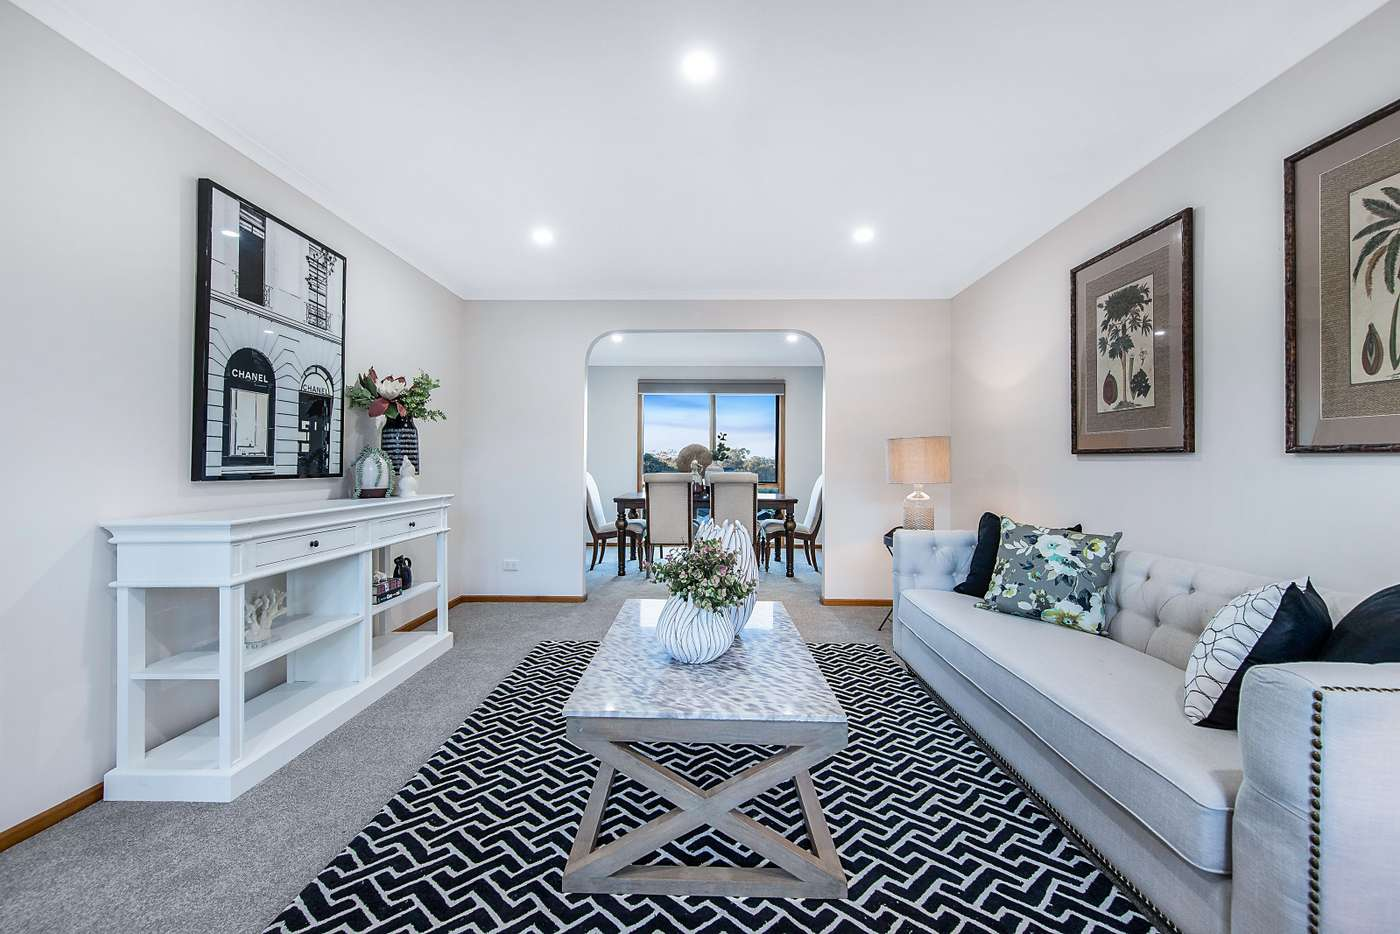 Fifth view of Homely house listing, 2 Katoomba Drive, Mulgrave VIC 3170